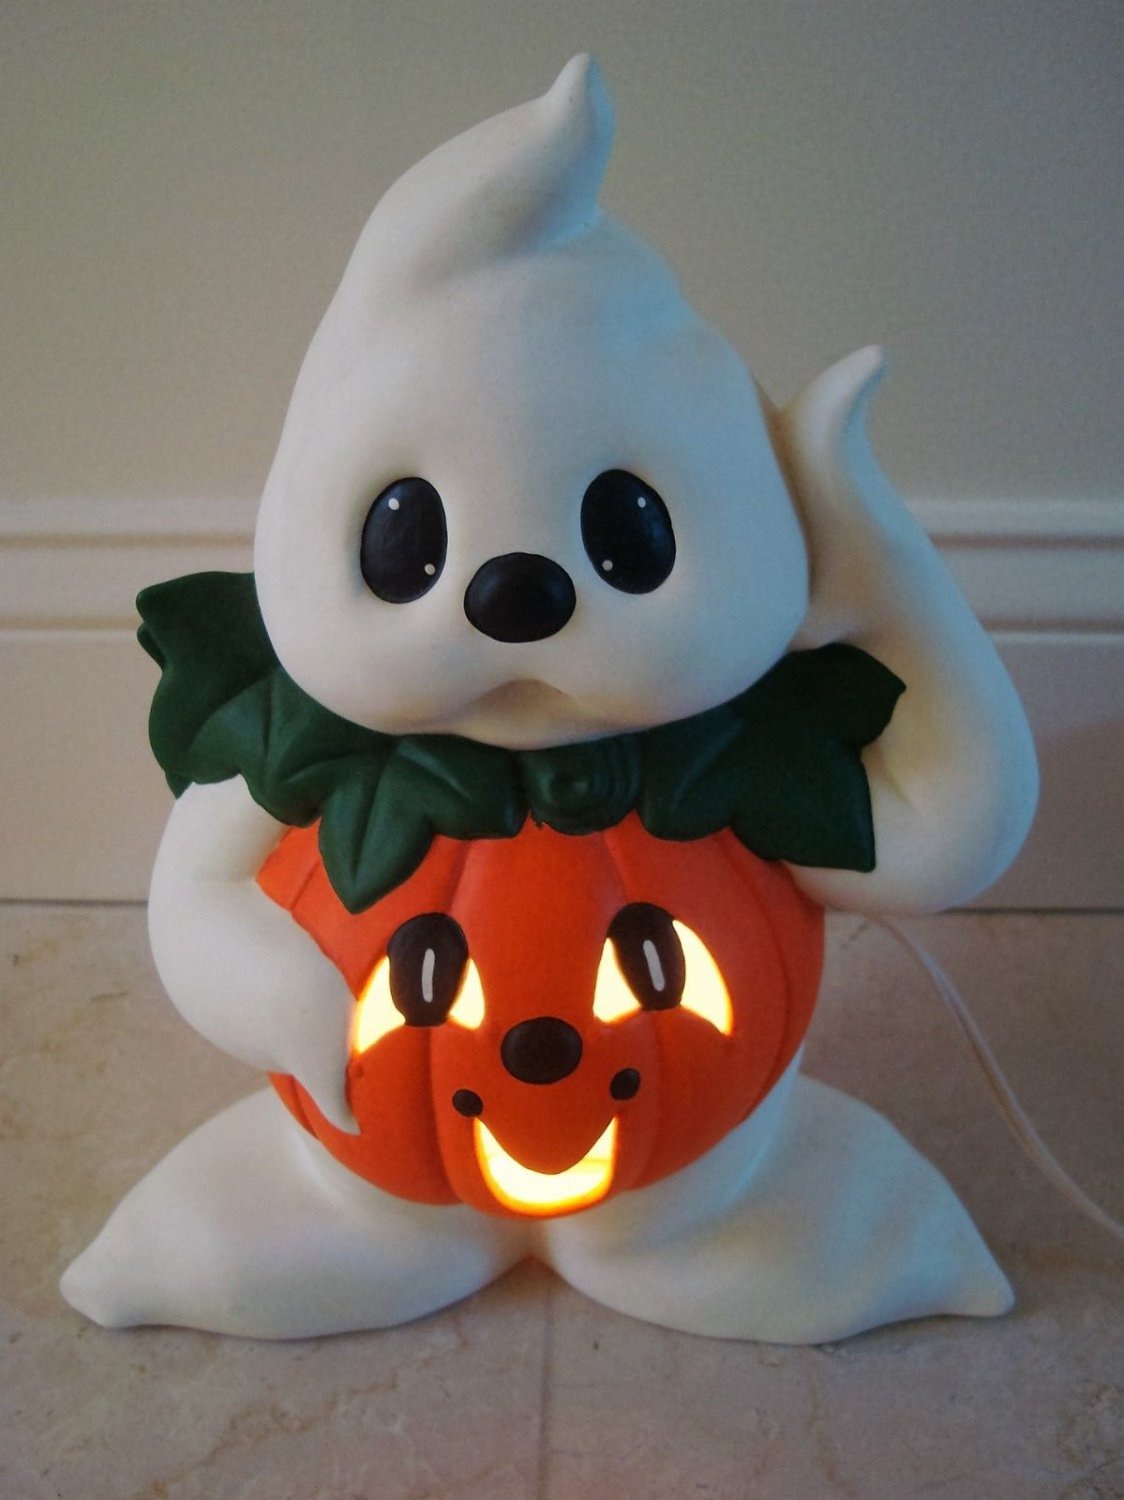 ADORABLE LIGHT UP CERAMIC GHOST DRESSED AS A PUMPKIN ****SO CUTE*****